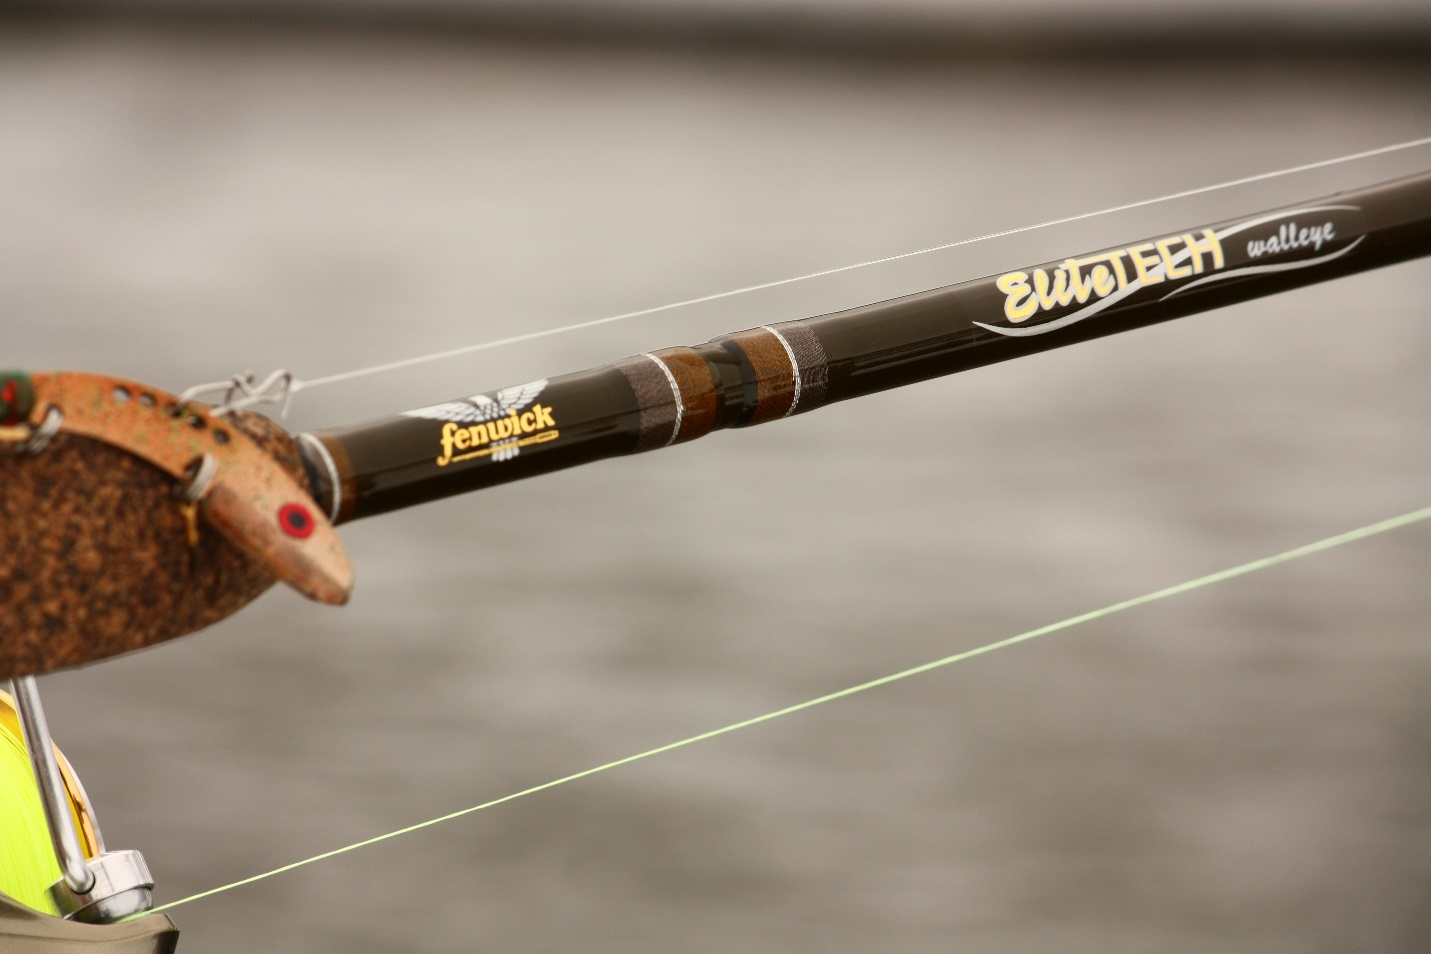 Choosing the right walleye rods jigging rigging for Walleye fishing tackle